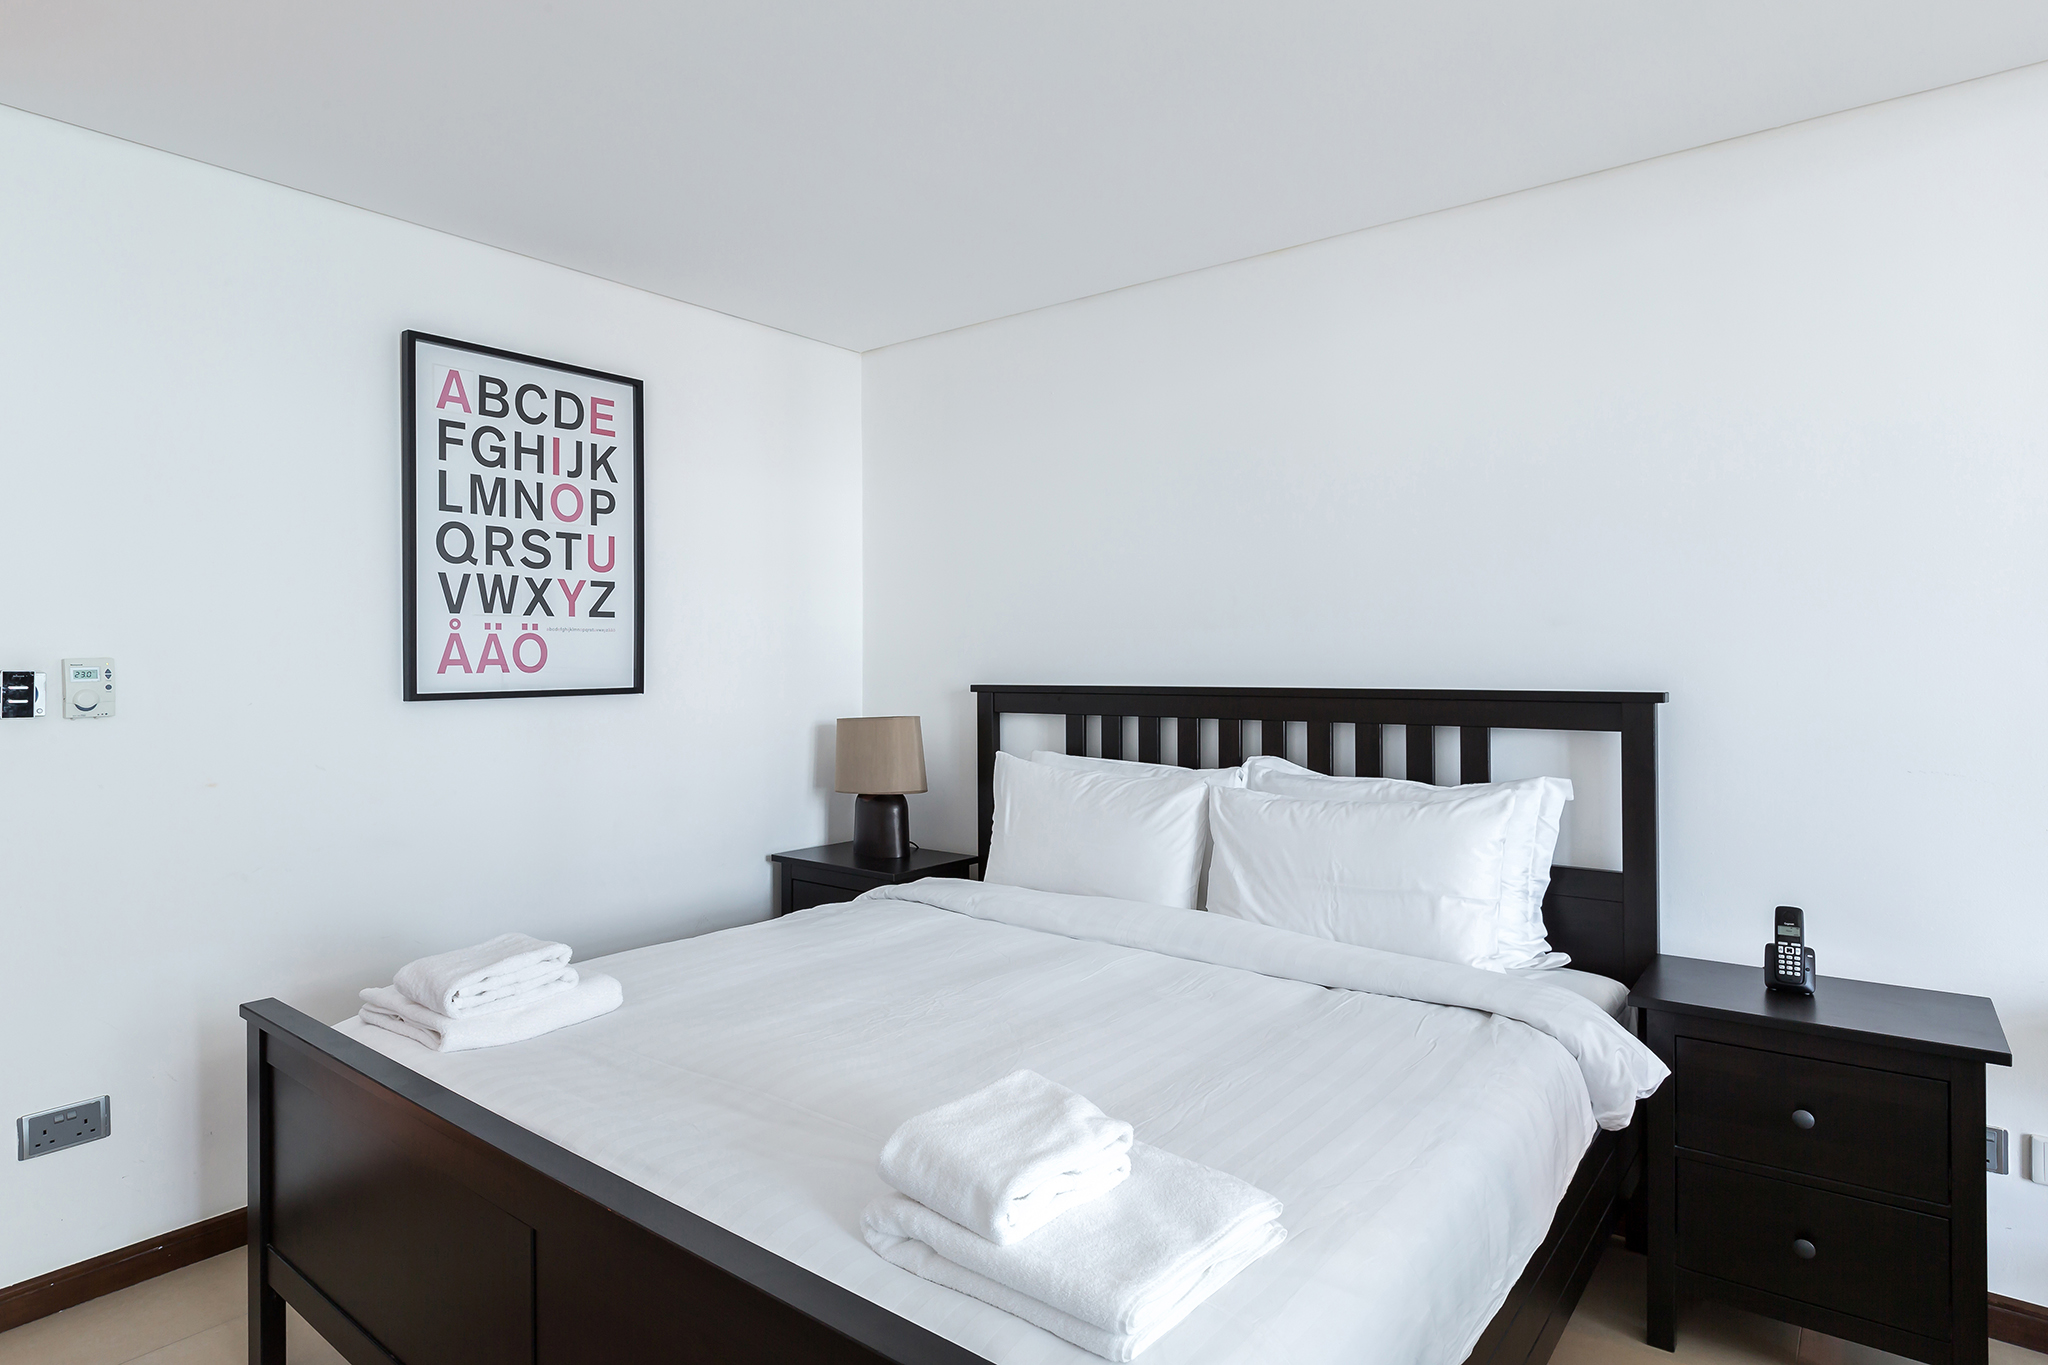 You will sleep very well in this brand new bed and firm king-sized mattress